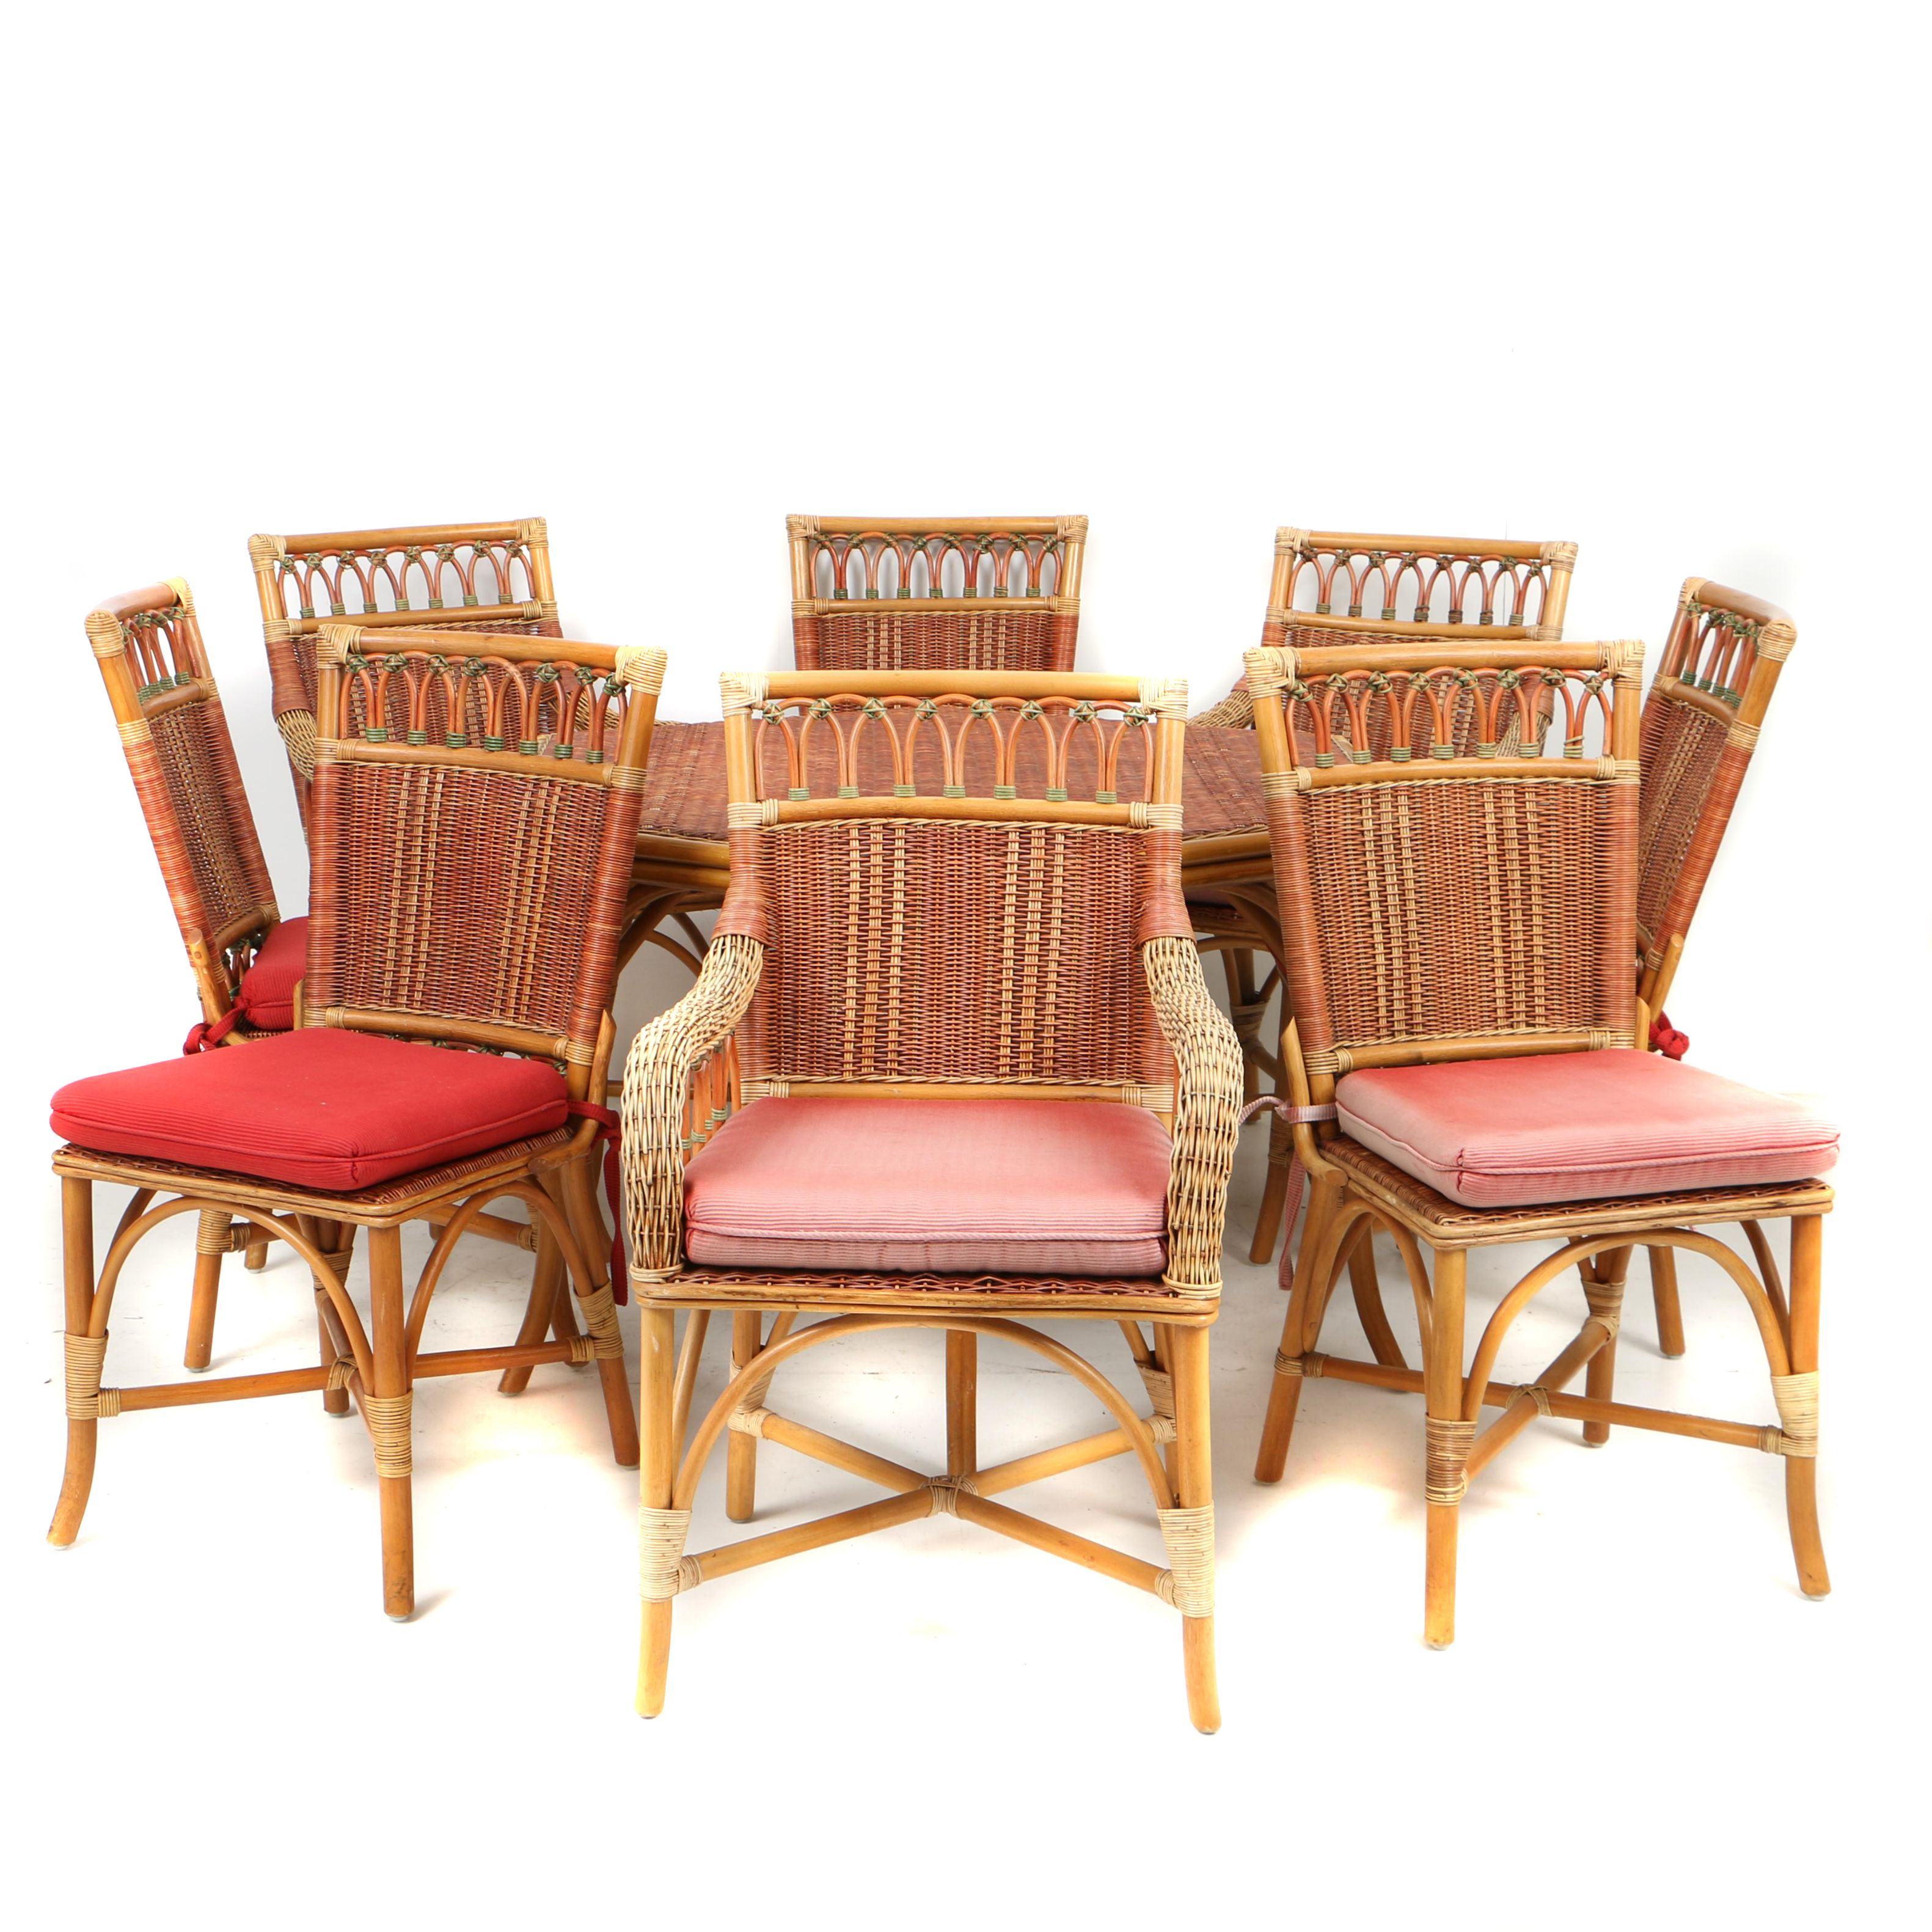 Vintage Wicker and Rattan Patio Dining Table with Eight Chairs EBTH